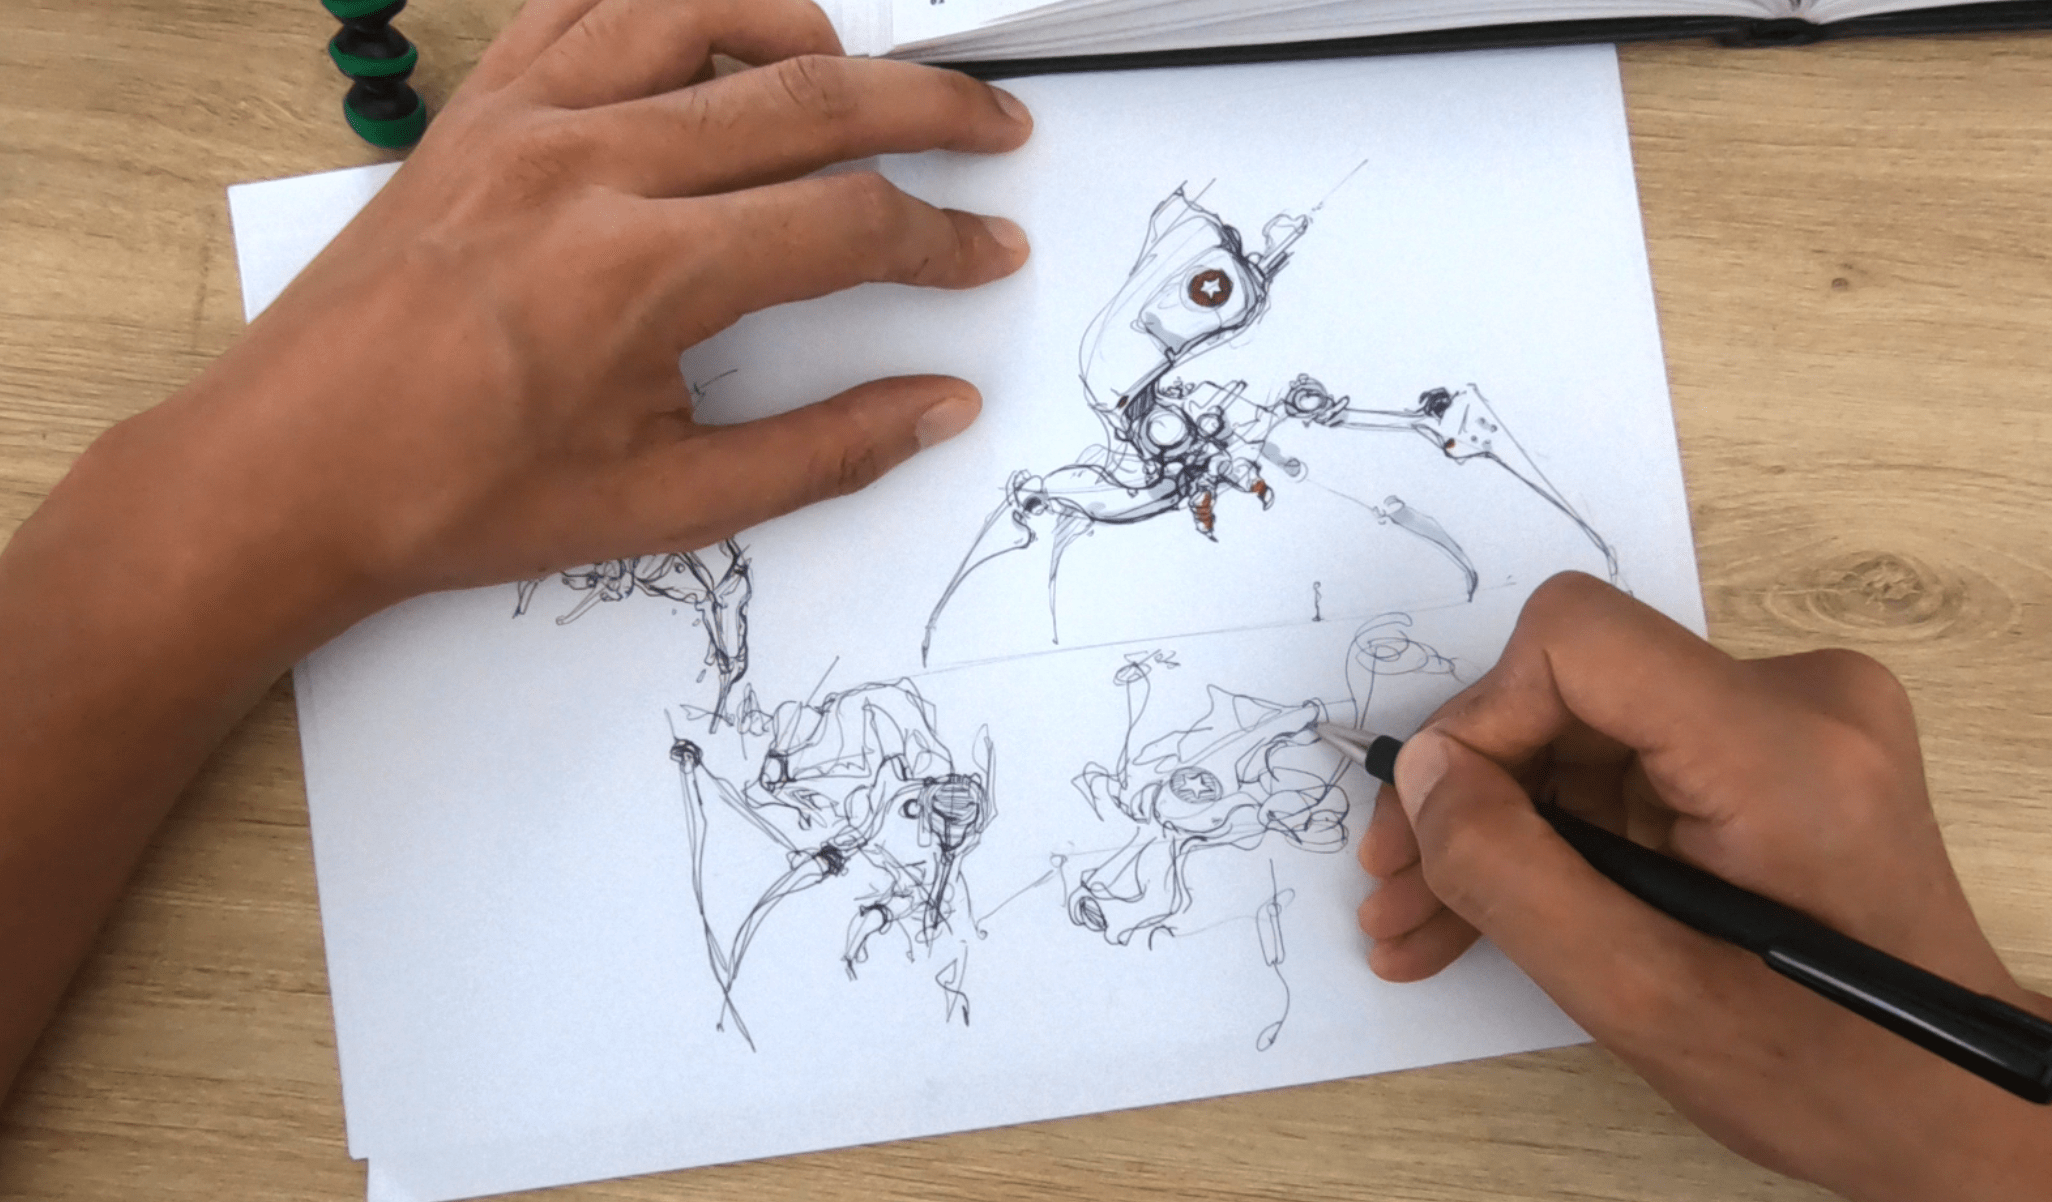 Drawing-with-ARTBOOKS-CHALLENGE-1-Artbook-by-Darren-Quach-Concept-art-d